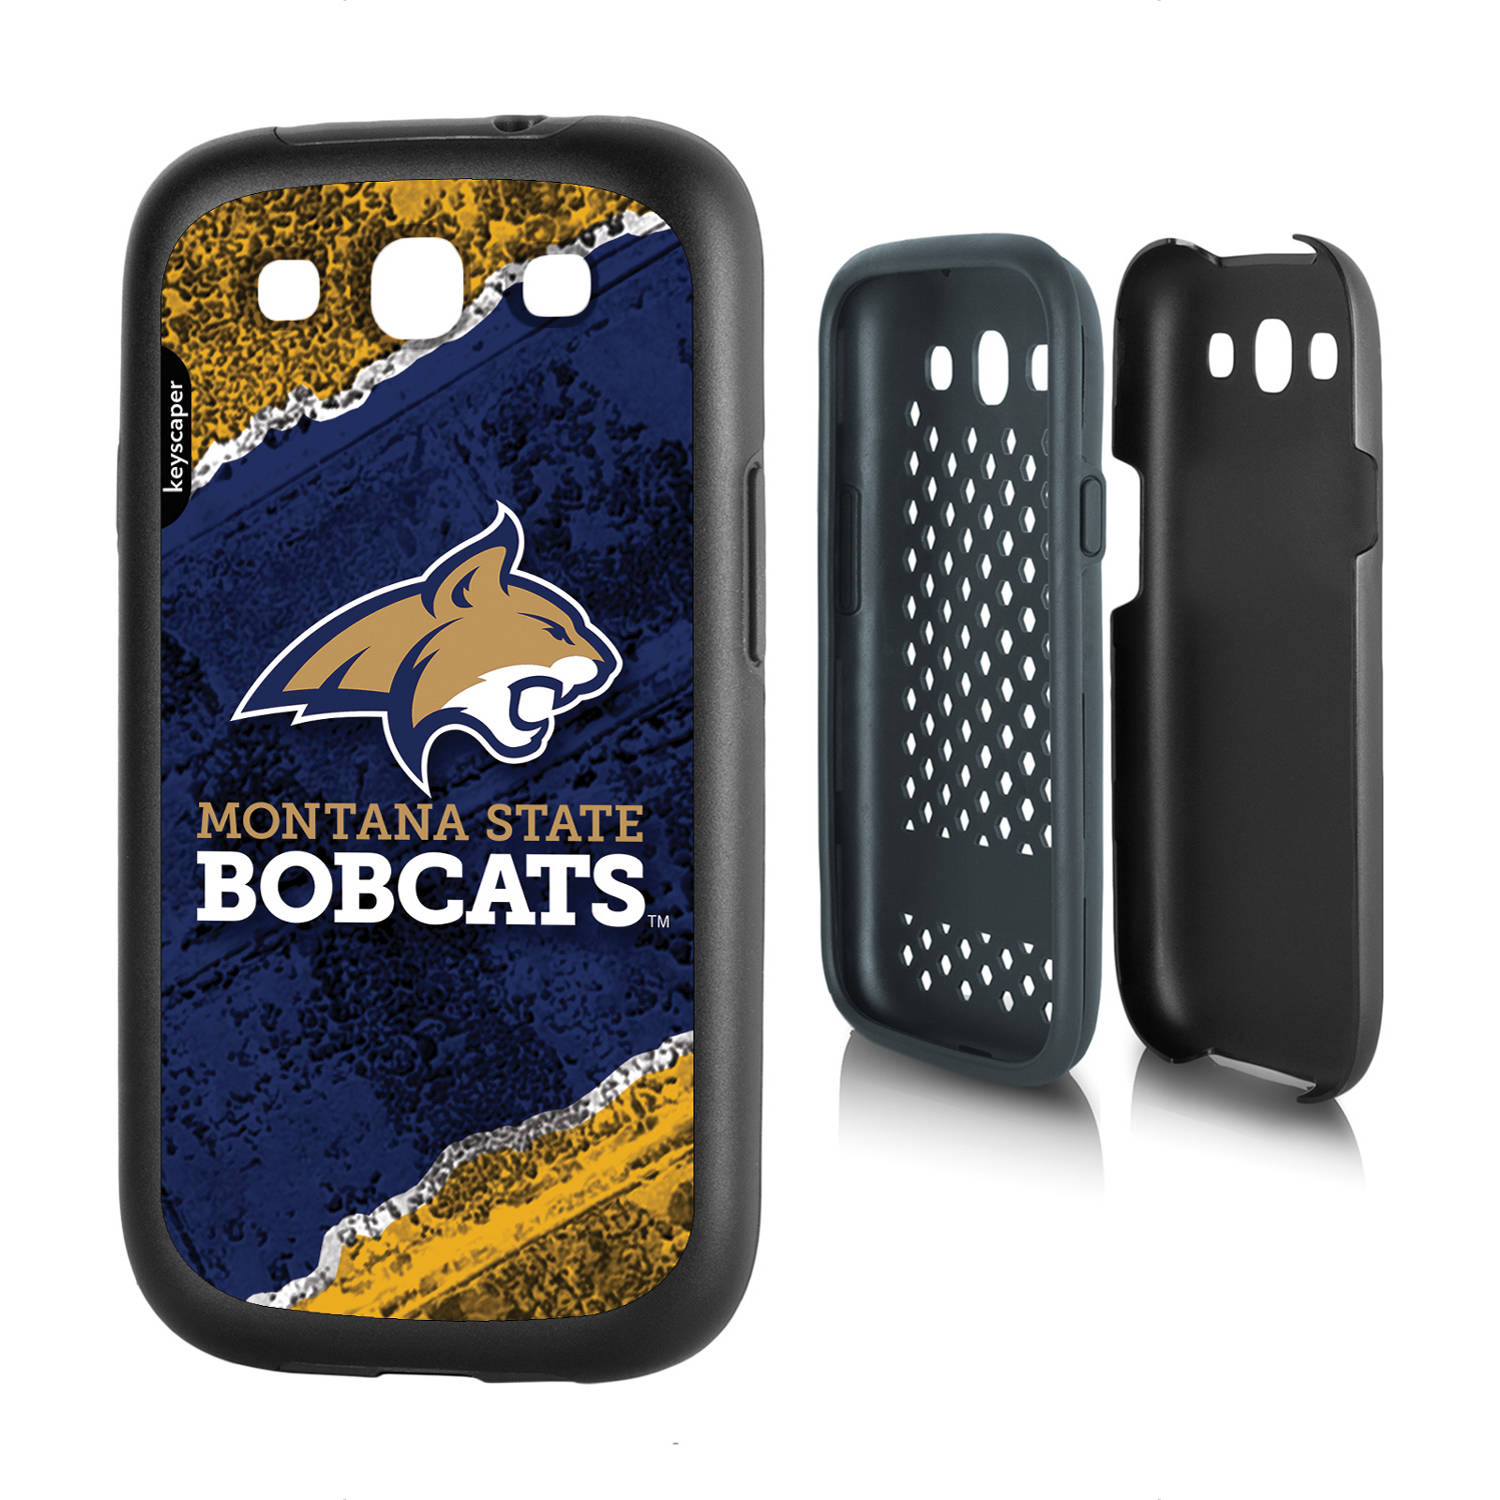 Montana State Bobcats Galaxy S3 Rugged Case